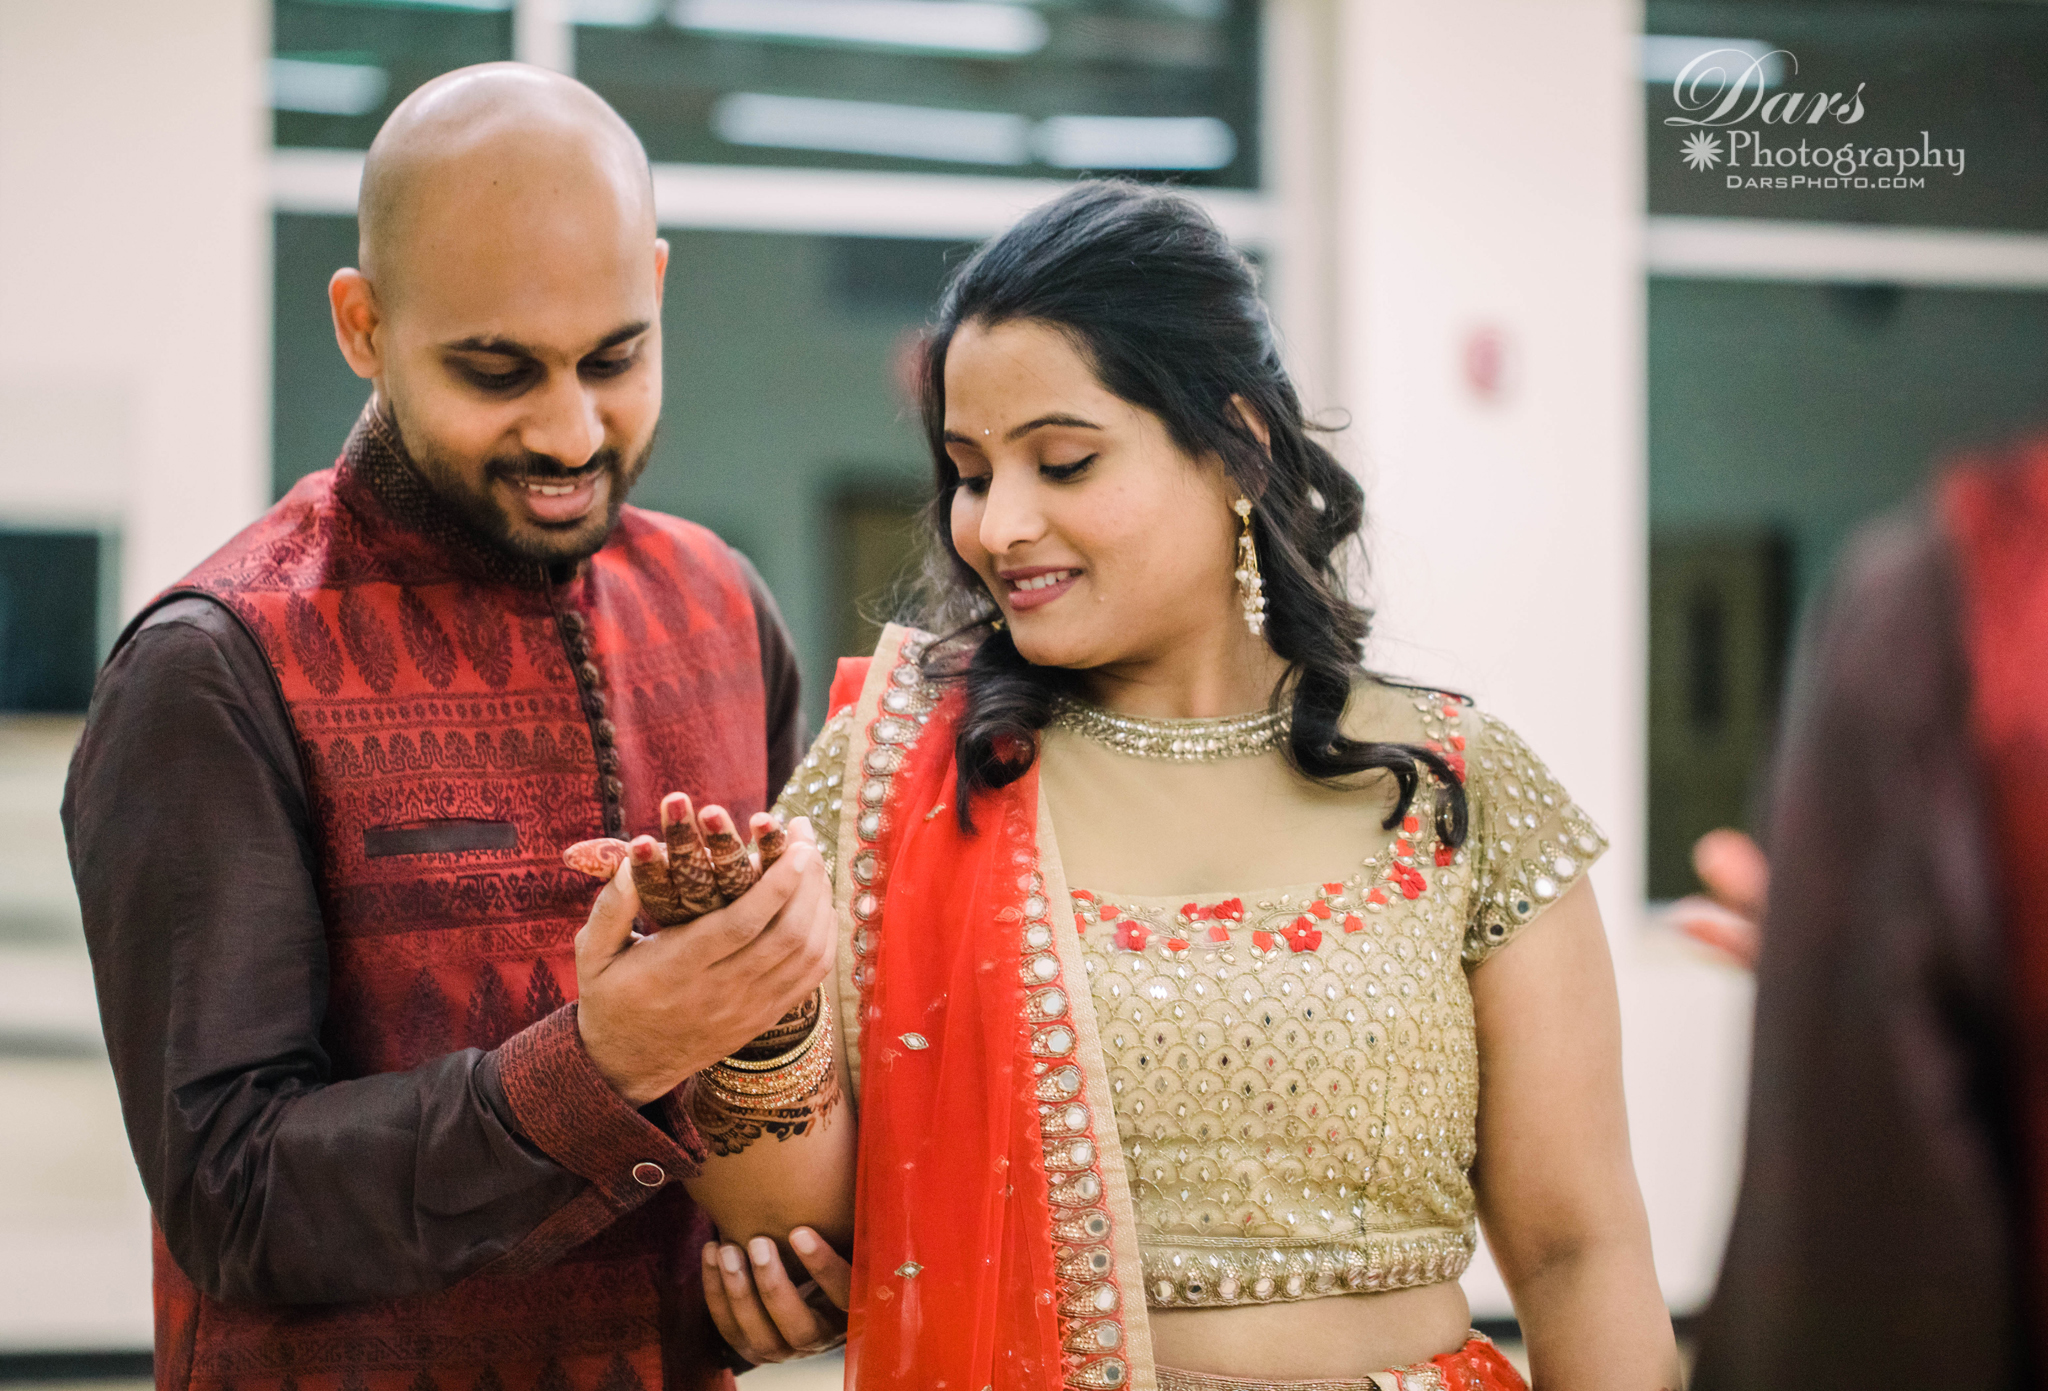 Chicago American And Indian Wedding Photographer DARS Photography 7